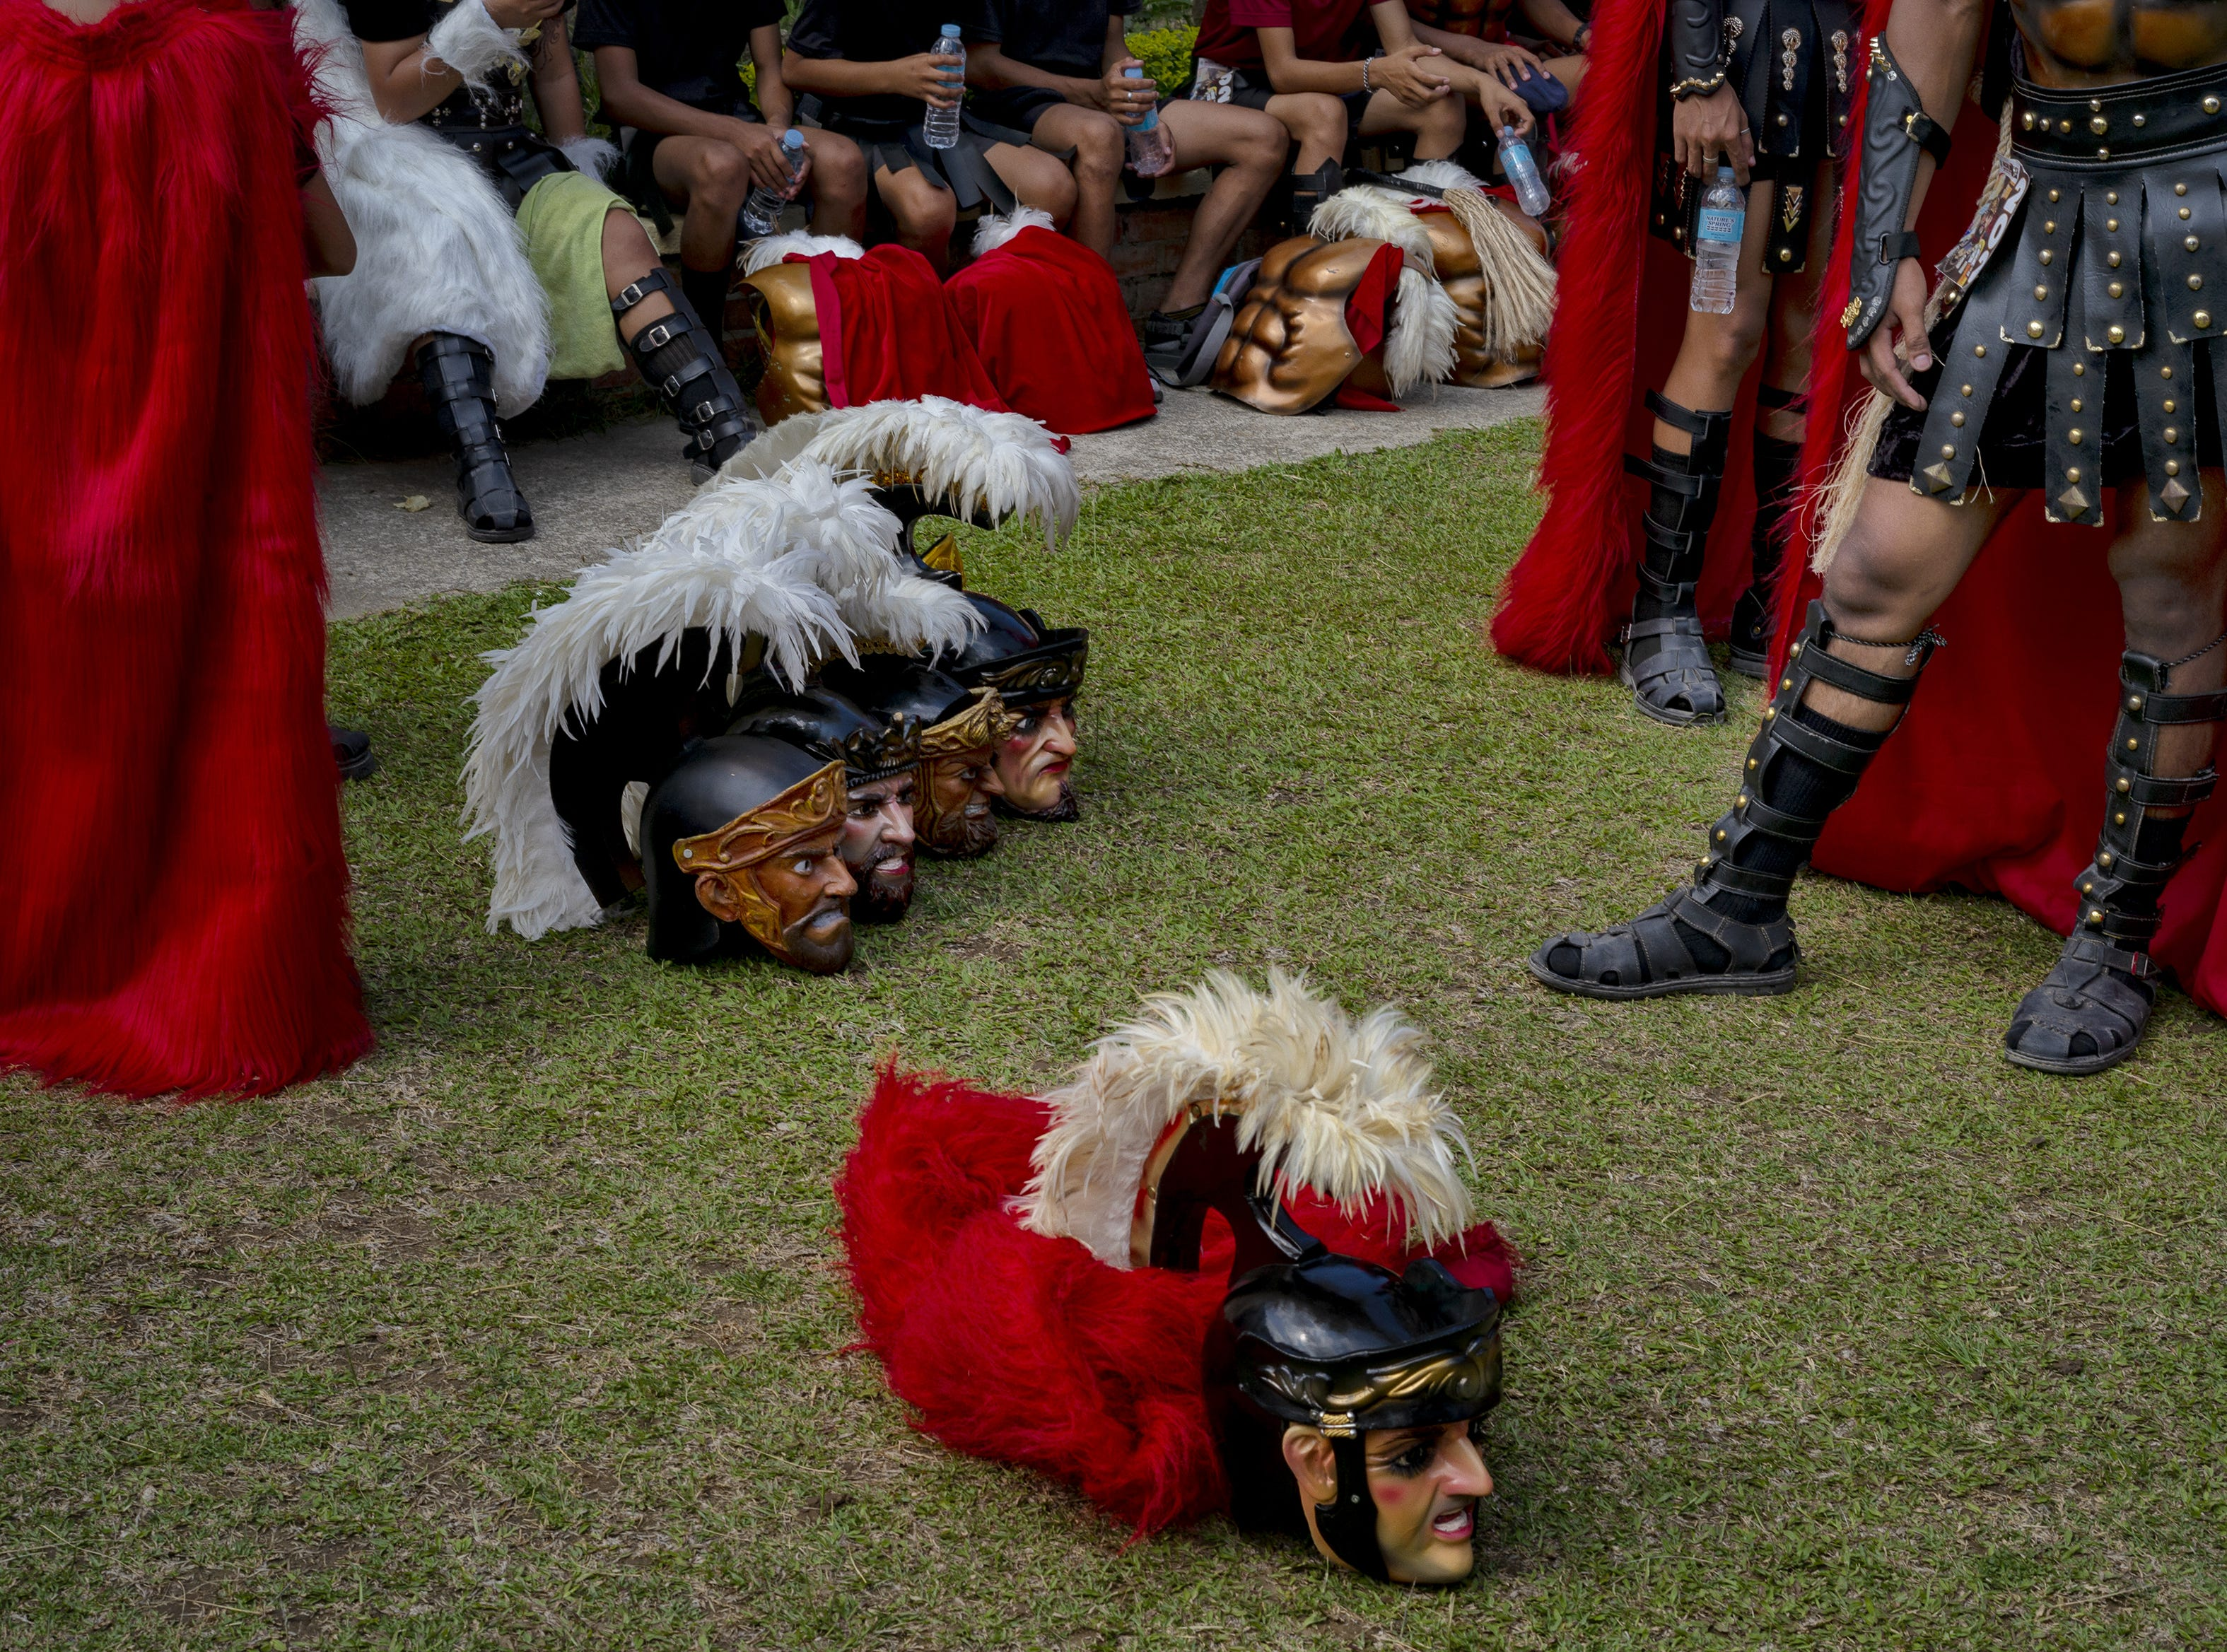 Residents dressed in their own version of Roman soldiers called Moriones, parade the streets as they observe the week of lent on April 18, 2019 in Boac, Marinduque in the Philippines. The Philippines, a predominantly Catholic country in Southeast Asia, join other Catholic nations in observance of holy week.